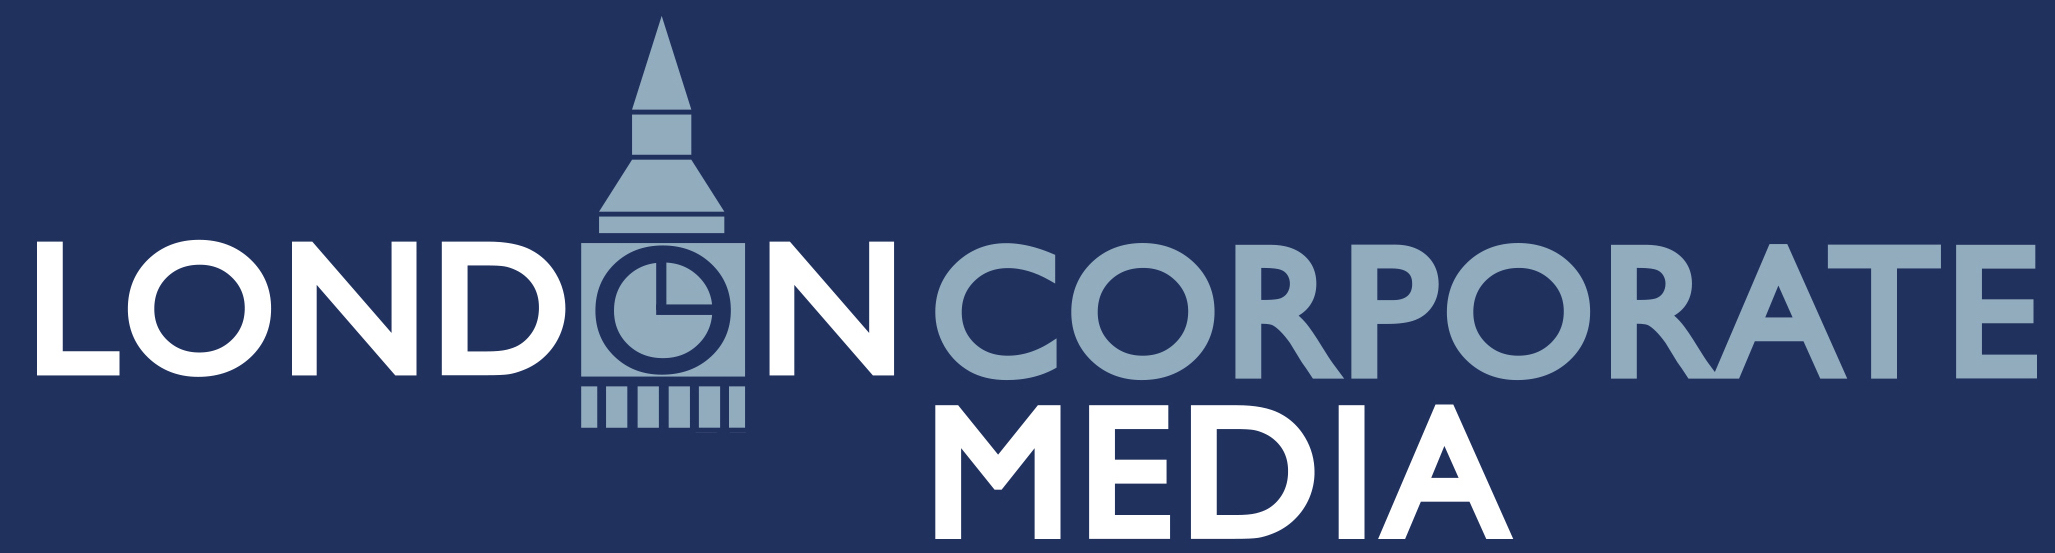 London Corporate Media Footer Icon